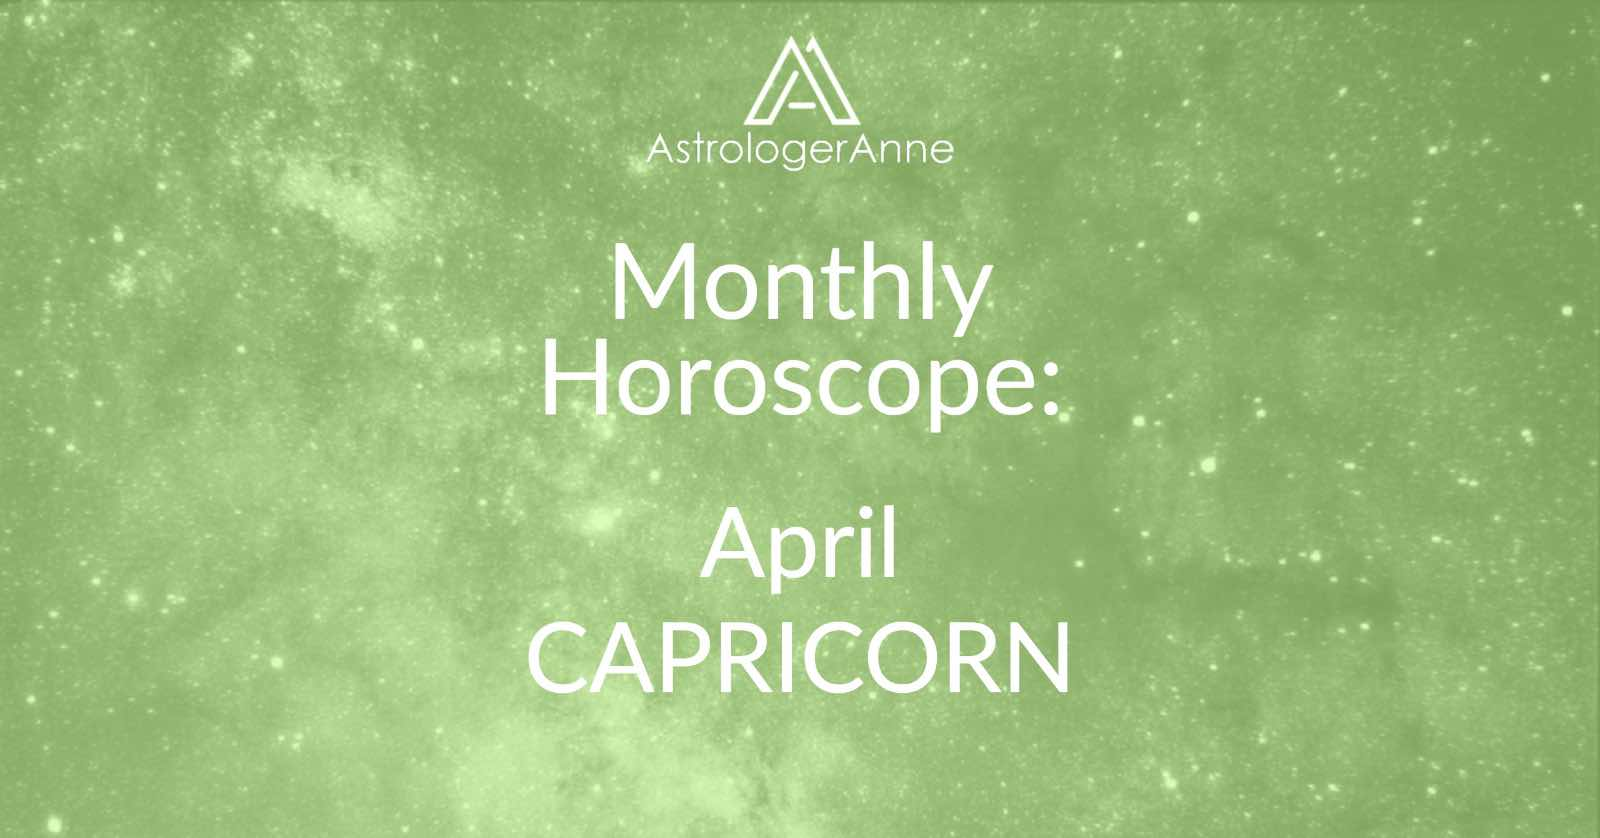 Monthly horoscope for Capricorn zodiac sign, April 2019